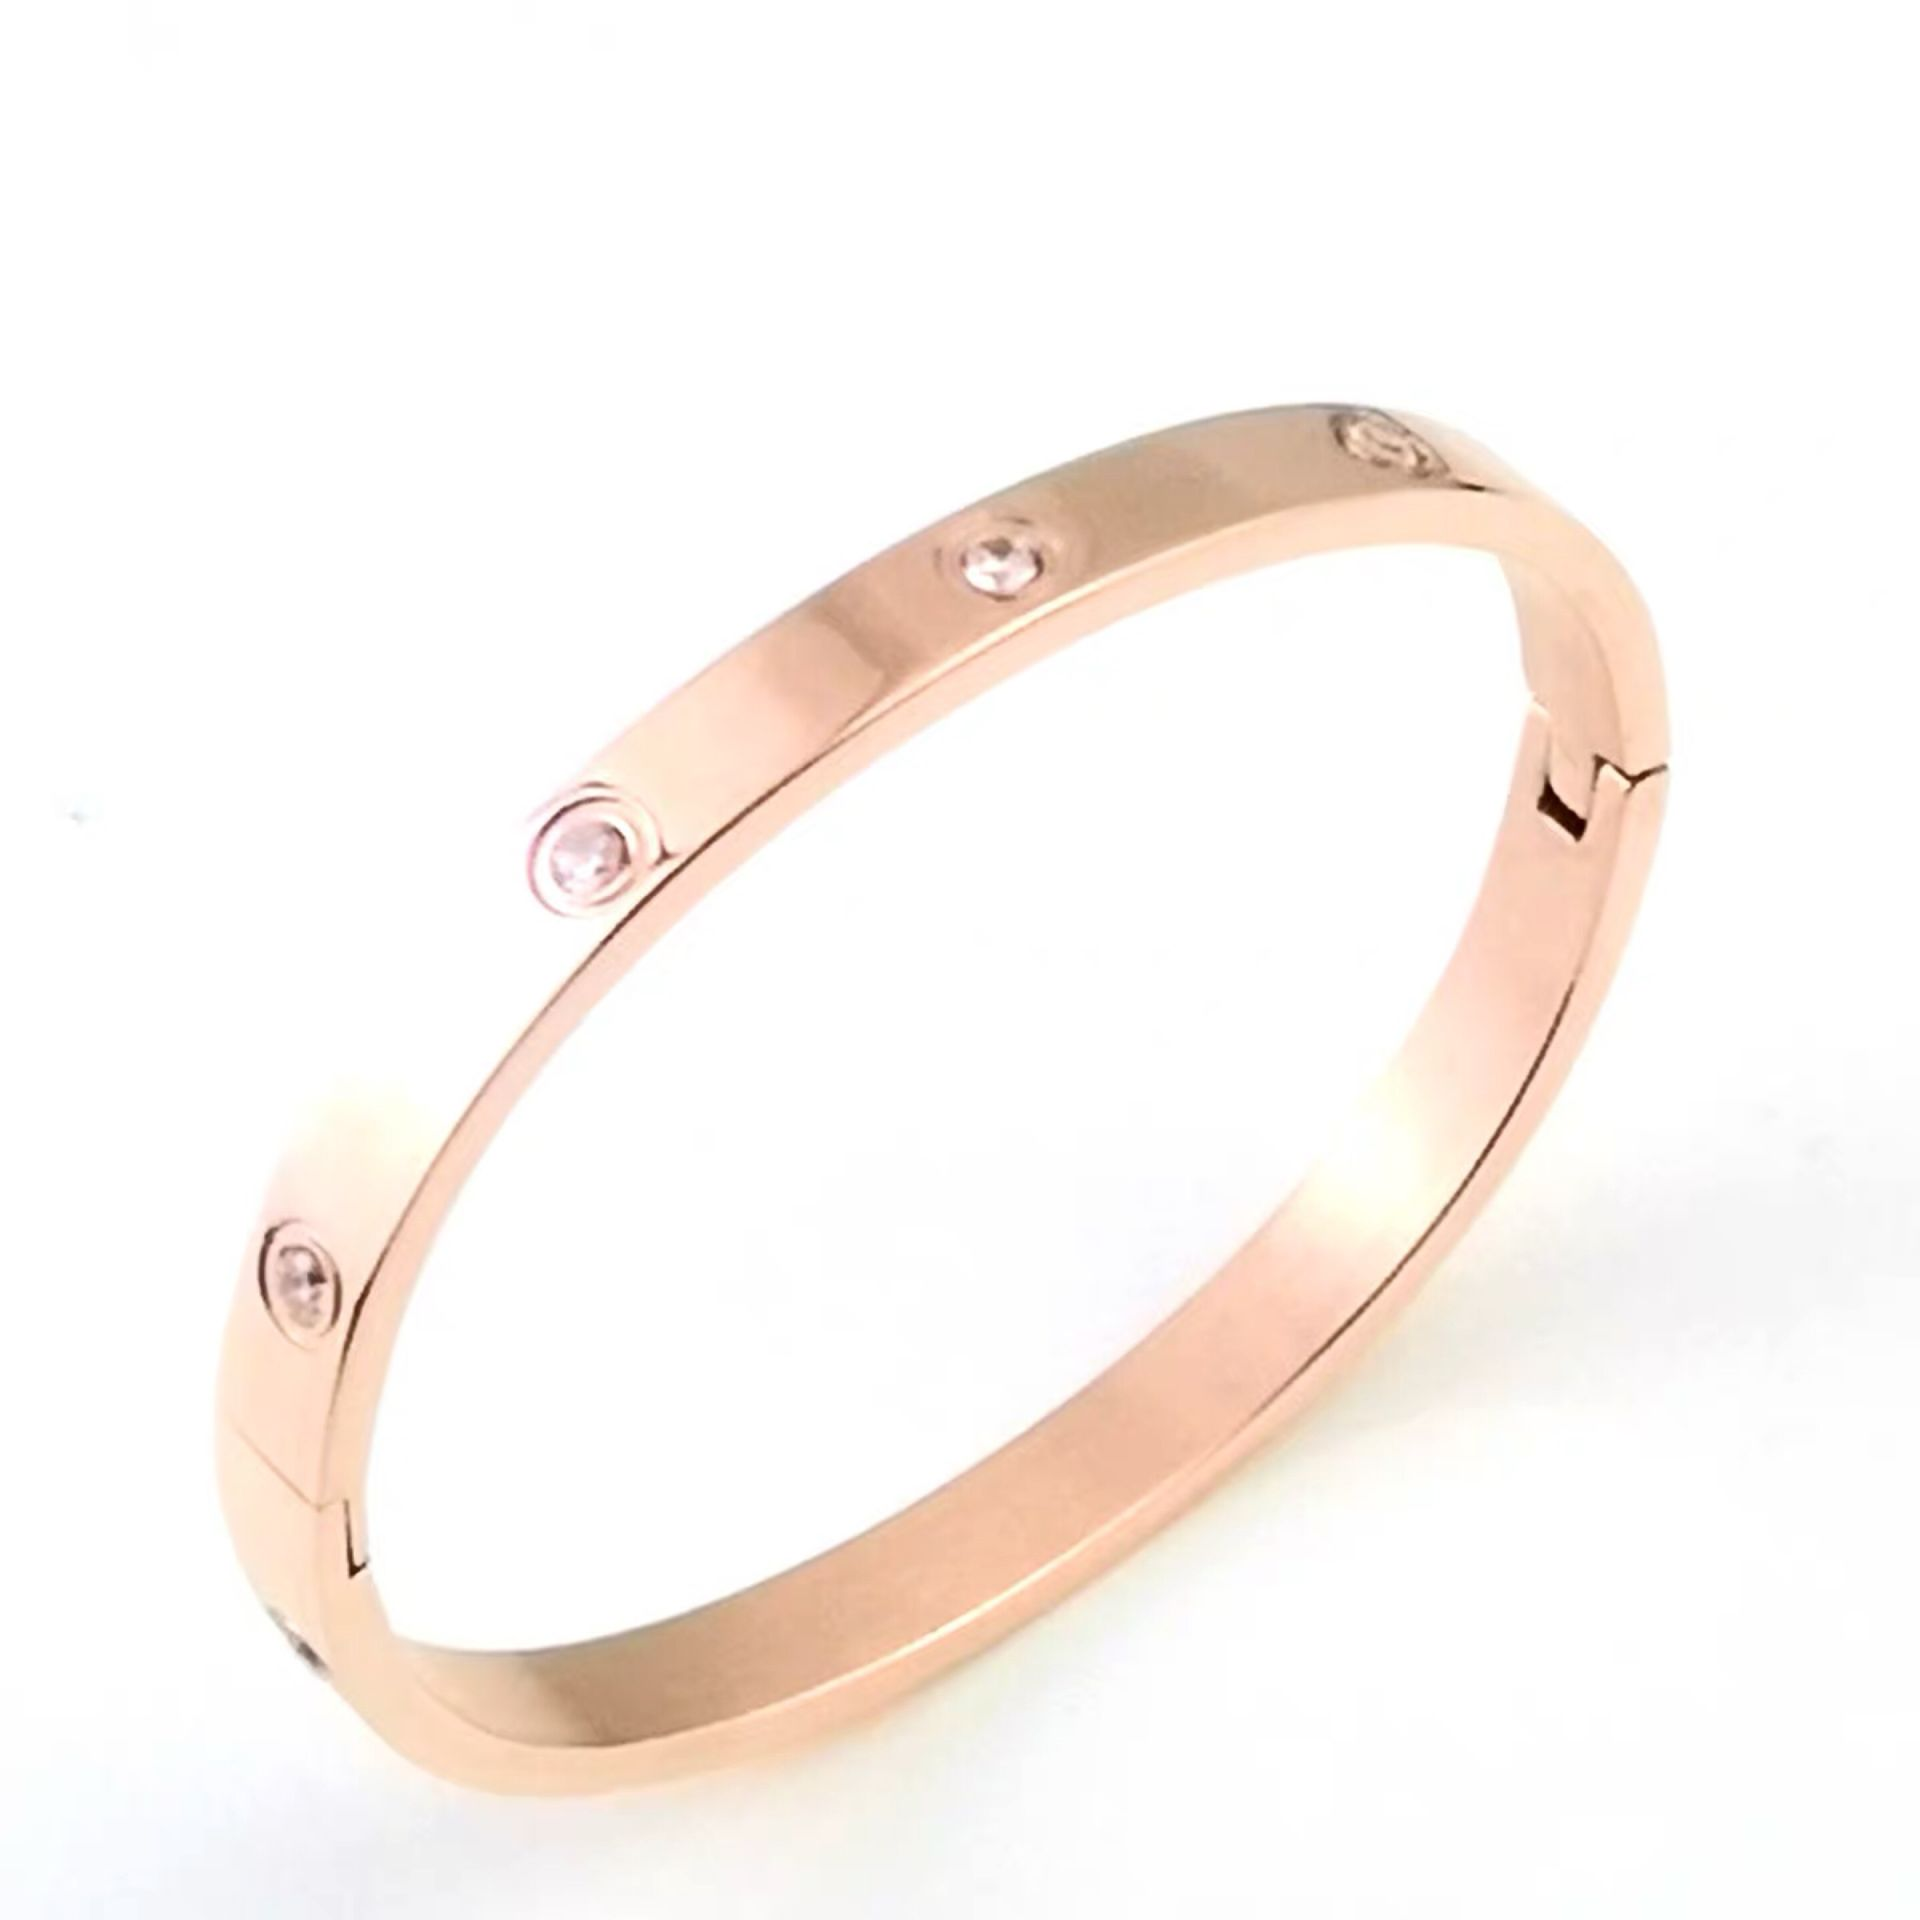 Gold Plating Lover Bracelets&Bangles For Women Rose Gold Color Stainless Steel Charming CZ Cuff Bracelet Luxury Jewelry